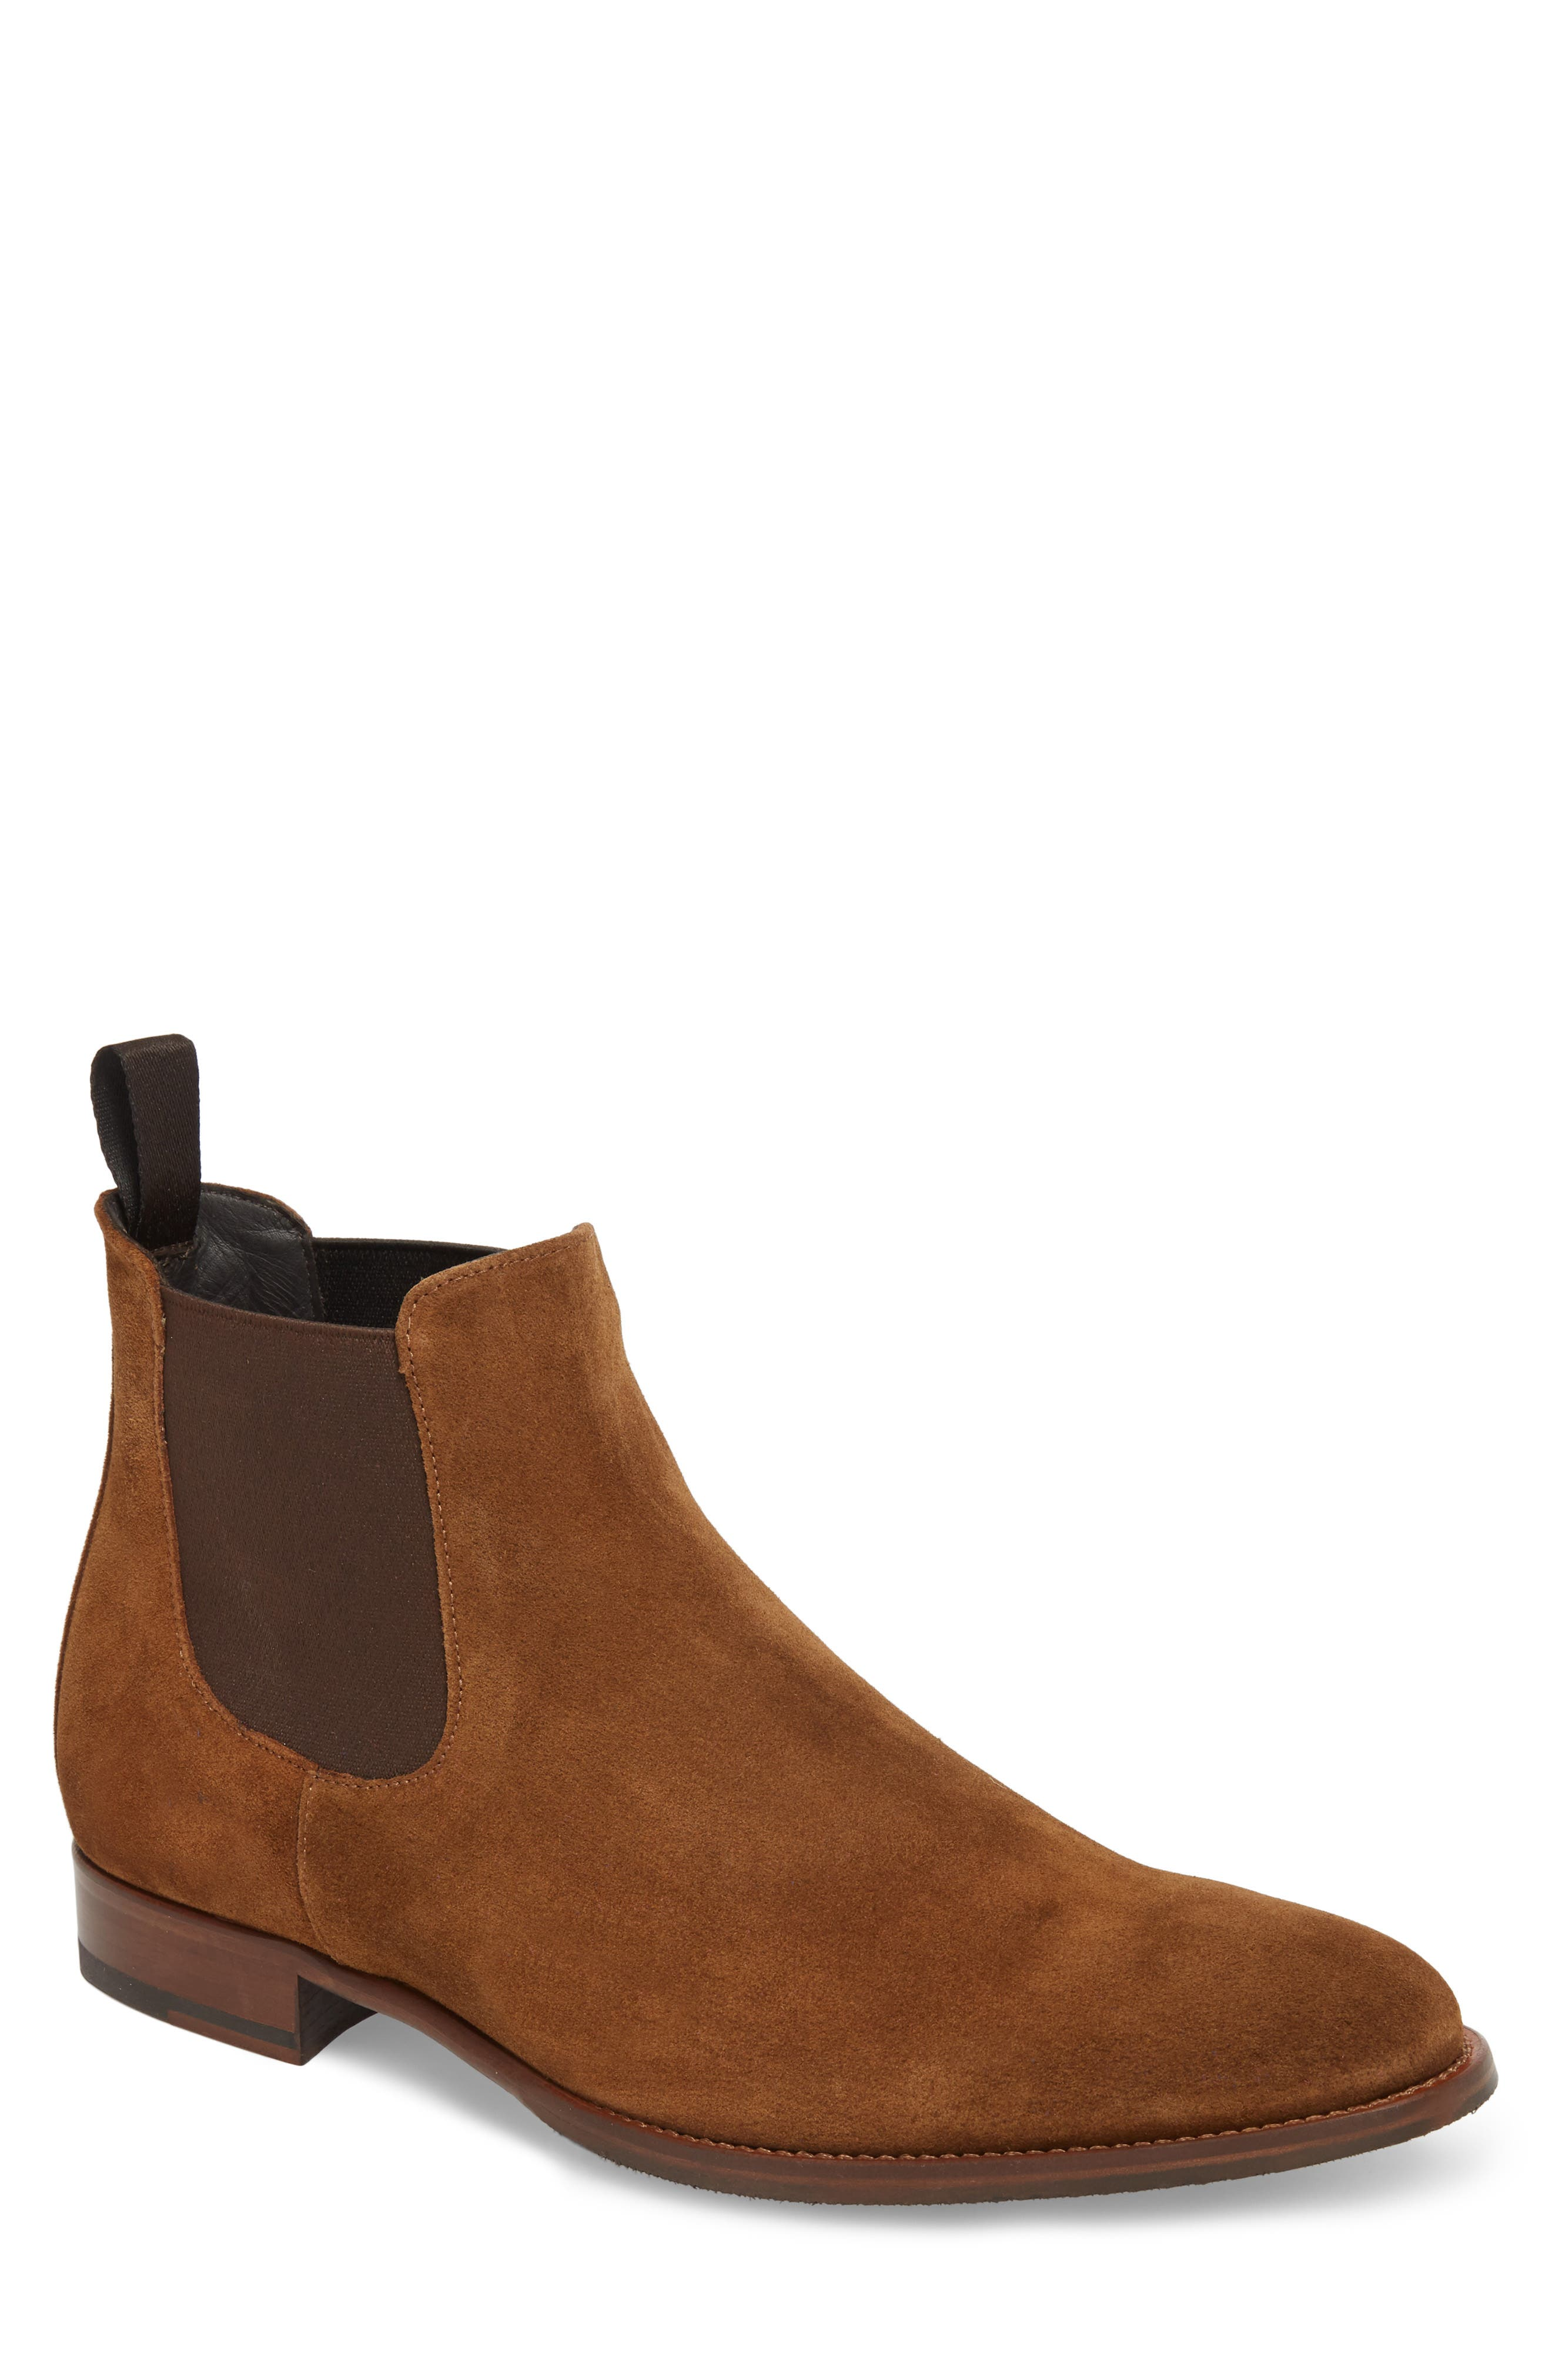 TO BOOT NEW YORK Shelby Mid Chelsea Boot, Main, color, MID BROWN SUEDE